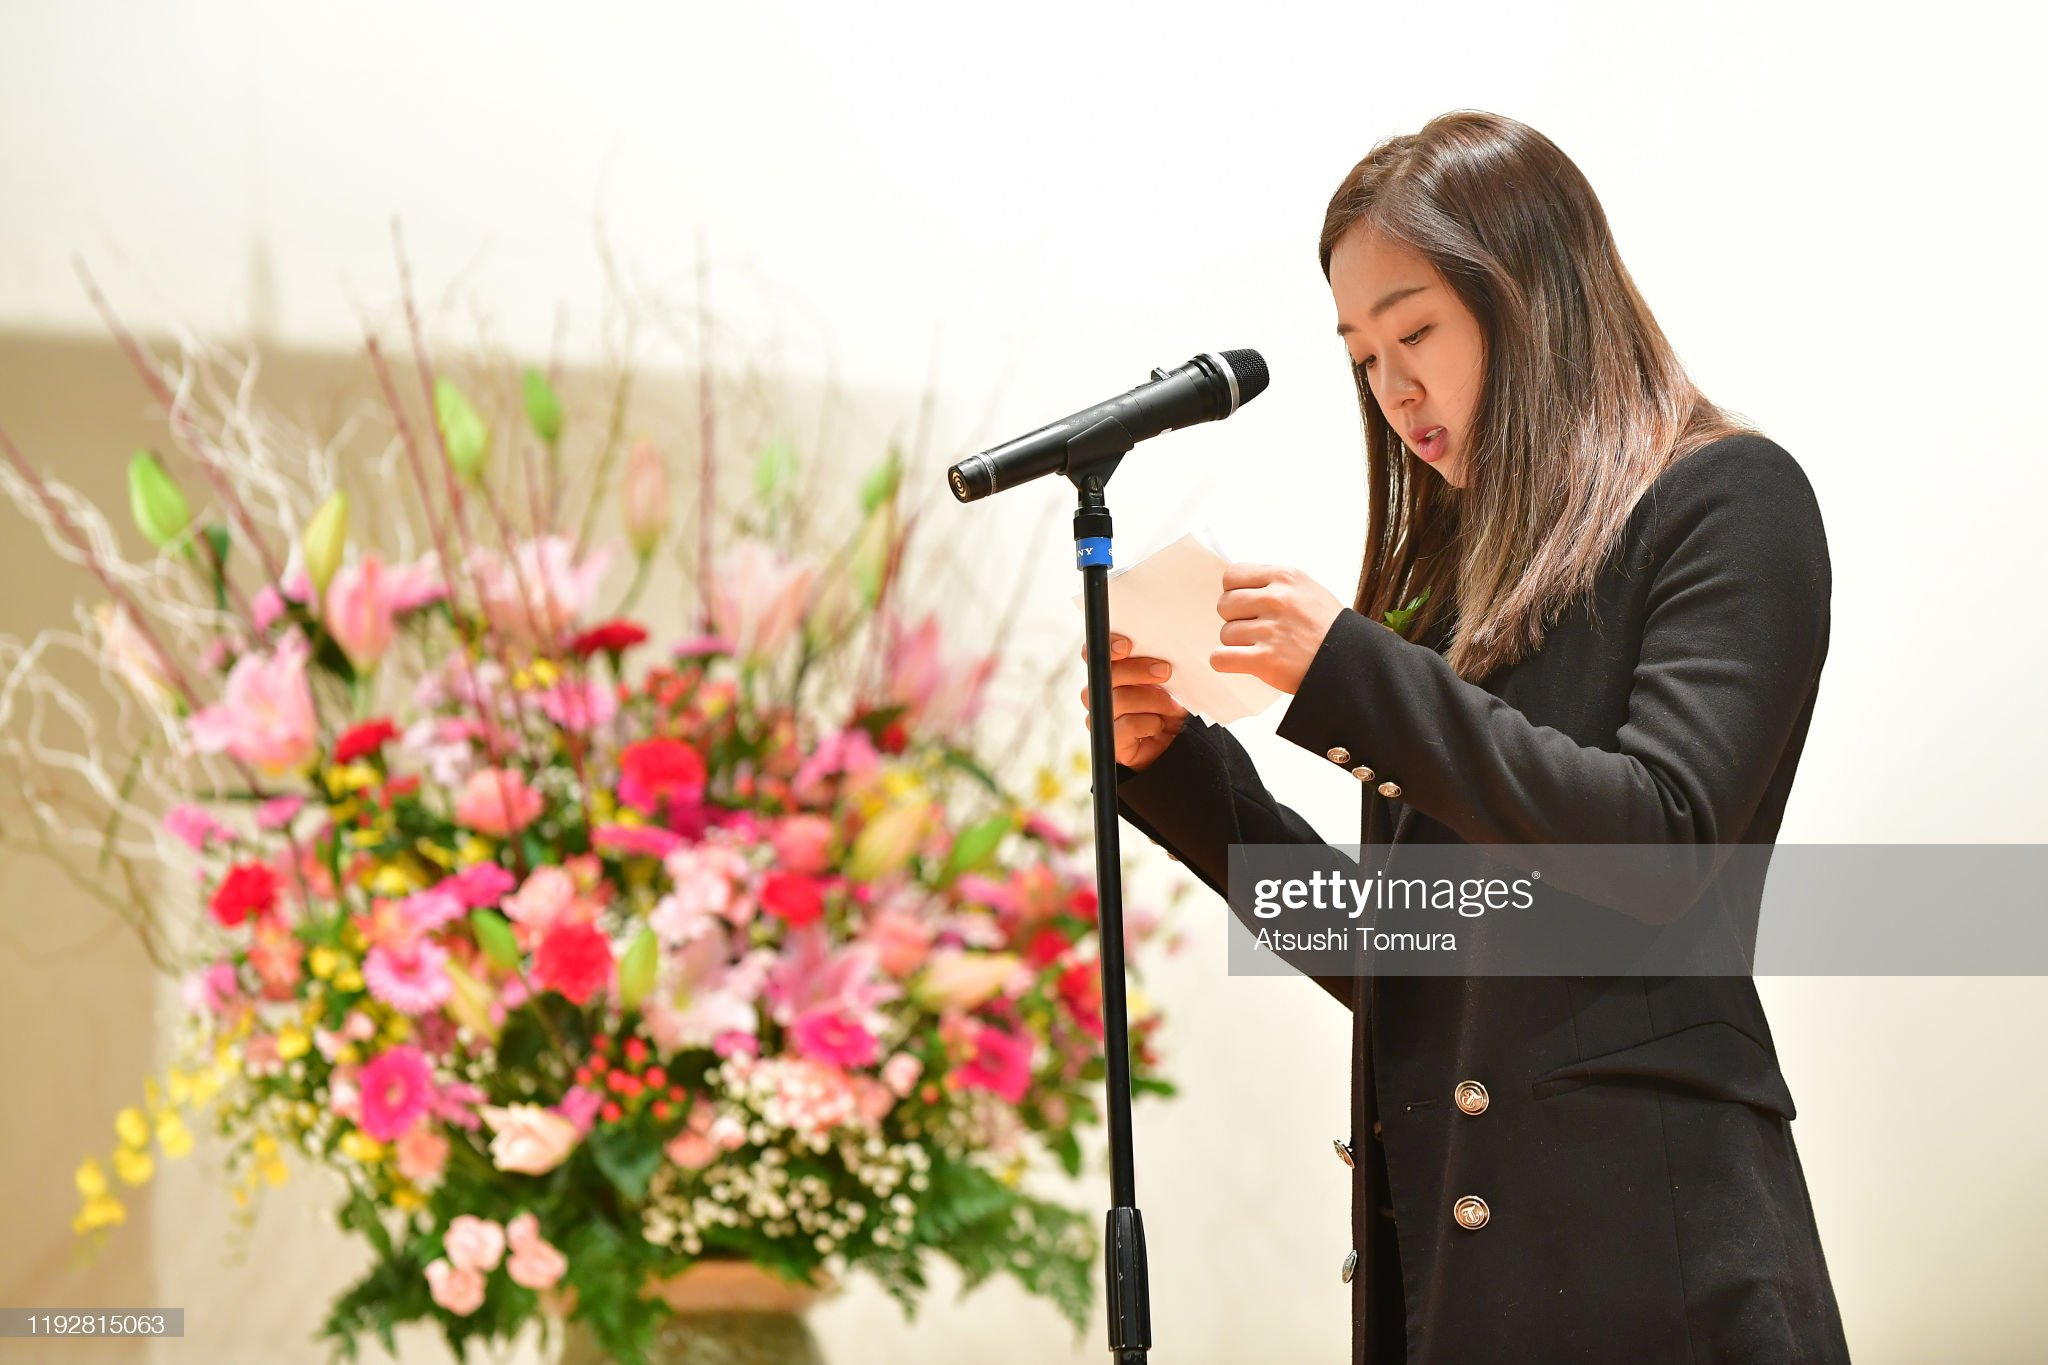 https://media.gettyimages.com/photos/solar-lee-of-south-korea-speaks-during-the-lpga-new-members-welcome-picture-id1192815063?s=2048x2048